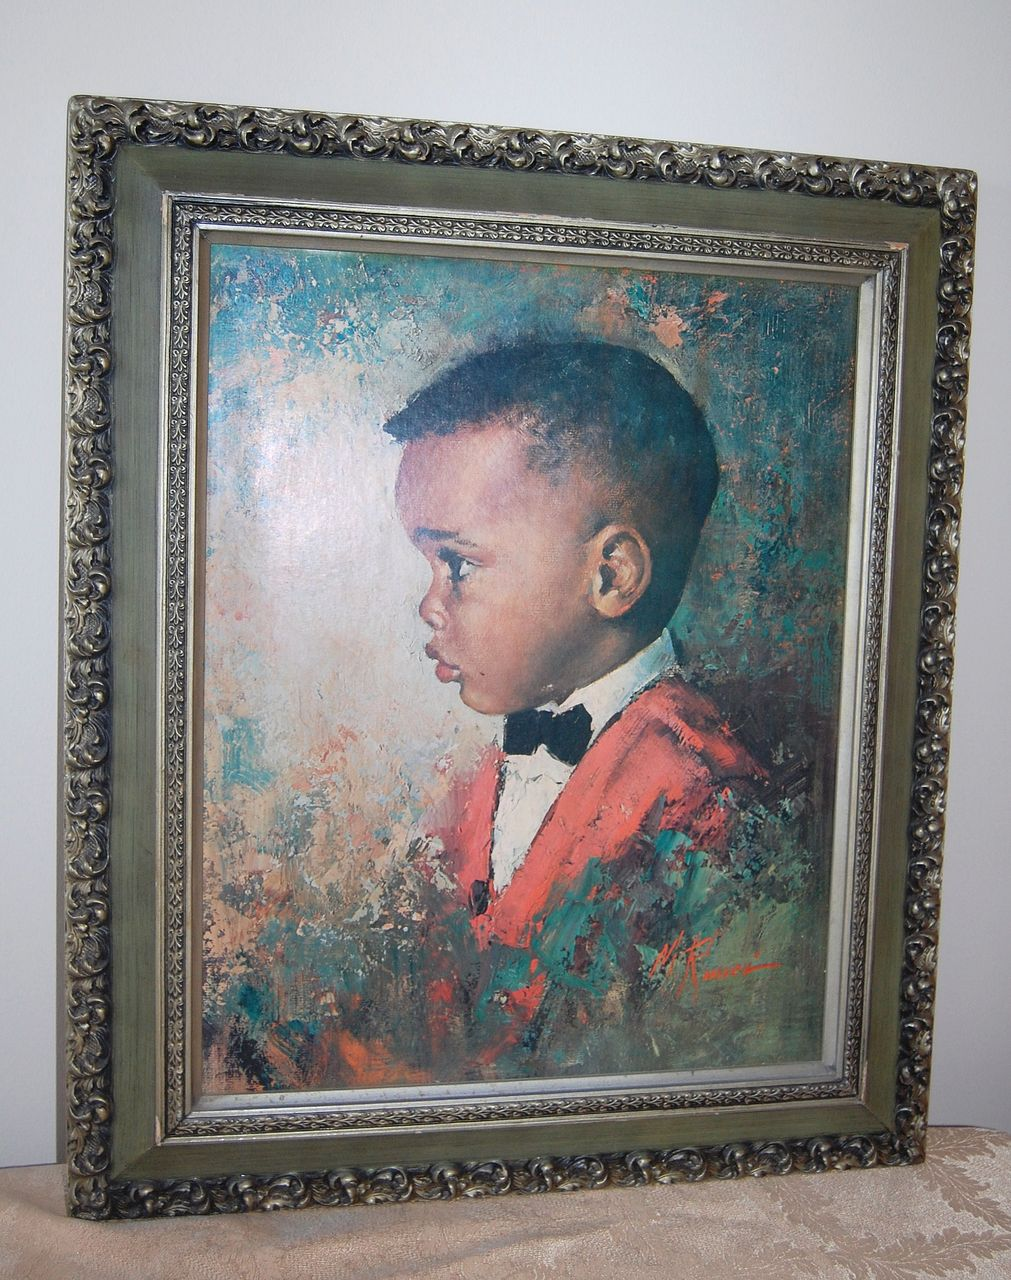 1970 Black Boy Huge Framed Print Signed M Runci From